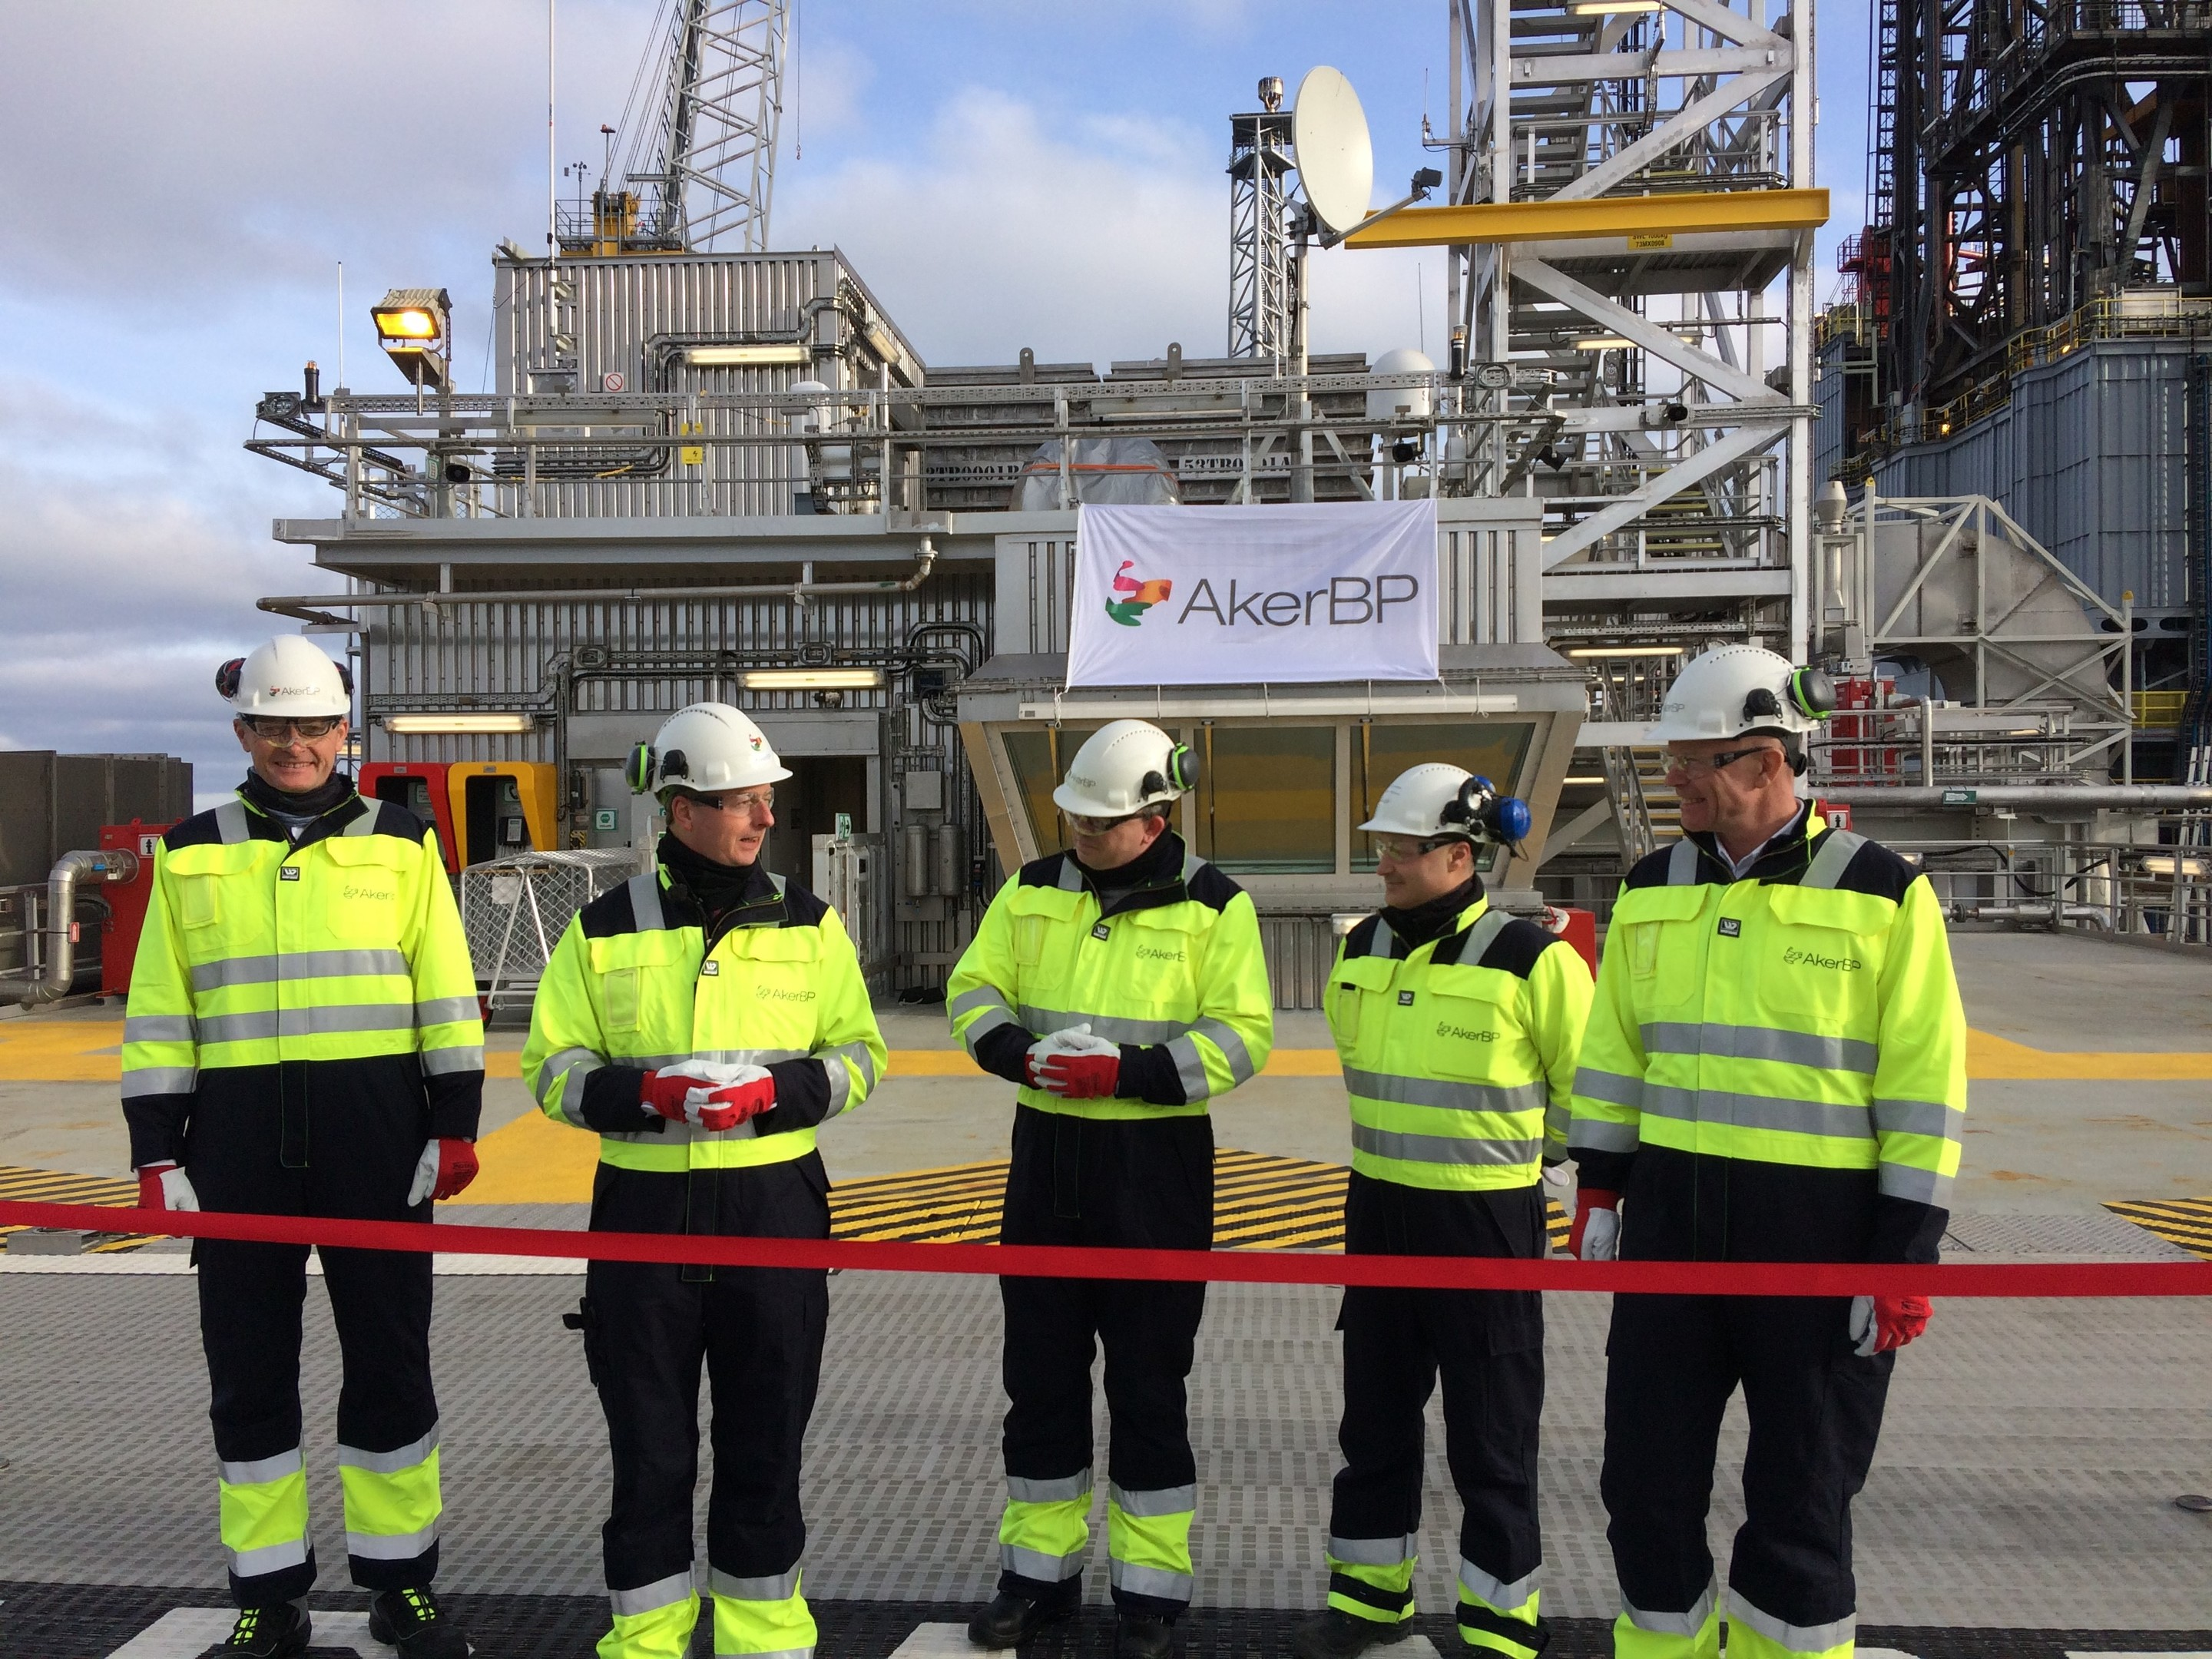 From left: AkerBP chairman Øyvind Eriksen,, Norwegian Energy Minister Terje Søviknes., AkerBP chief executive Karl Johnny Hersvik, Ivar Aasen OIM Bjørn Thore Ribesen and Aker BP's Sverre Skogen.